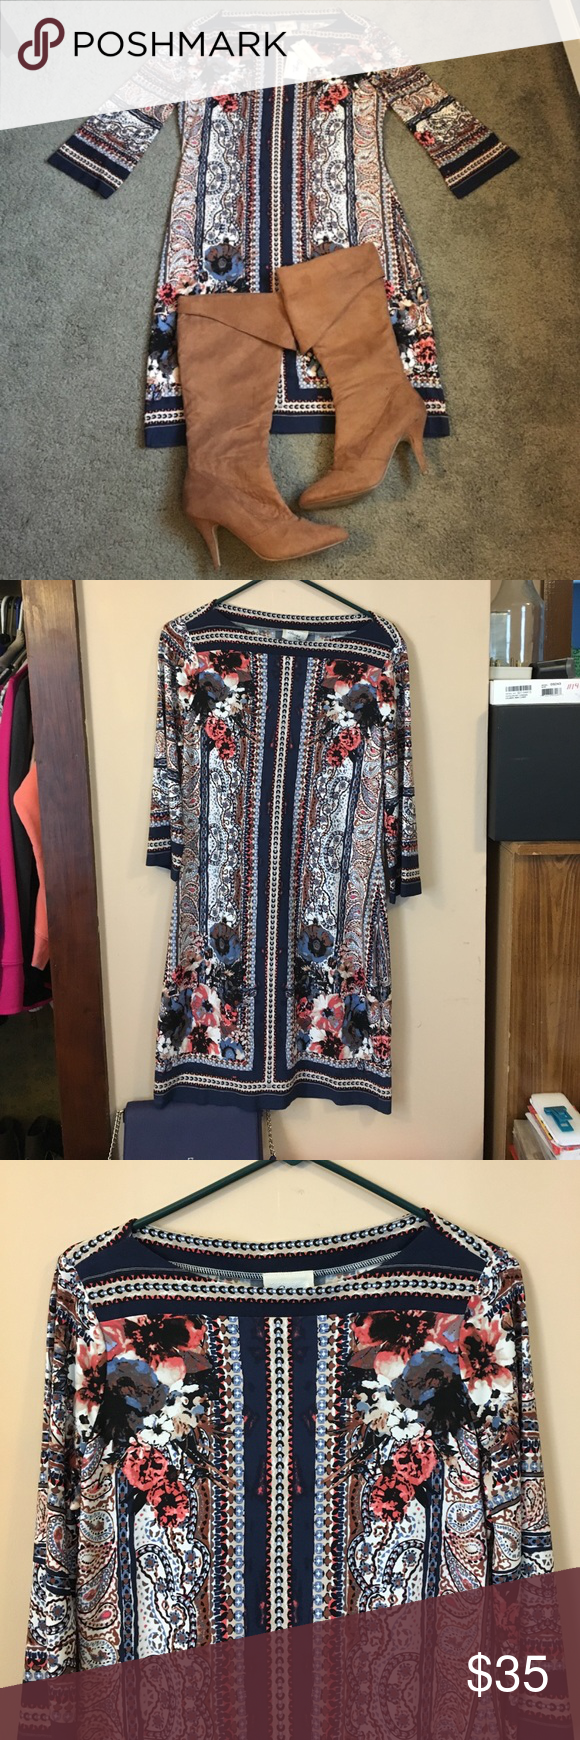 "NWT Sheath Dress by E.C.I Beautiful Navy blue sheath dress with pops of coral and cream. Size 8, NWT, 37.5"" in length, material is stretchy. Originally priced at $135 ECI Dresses Midi"